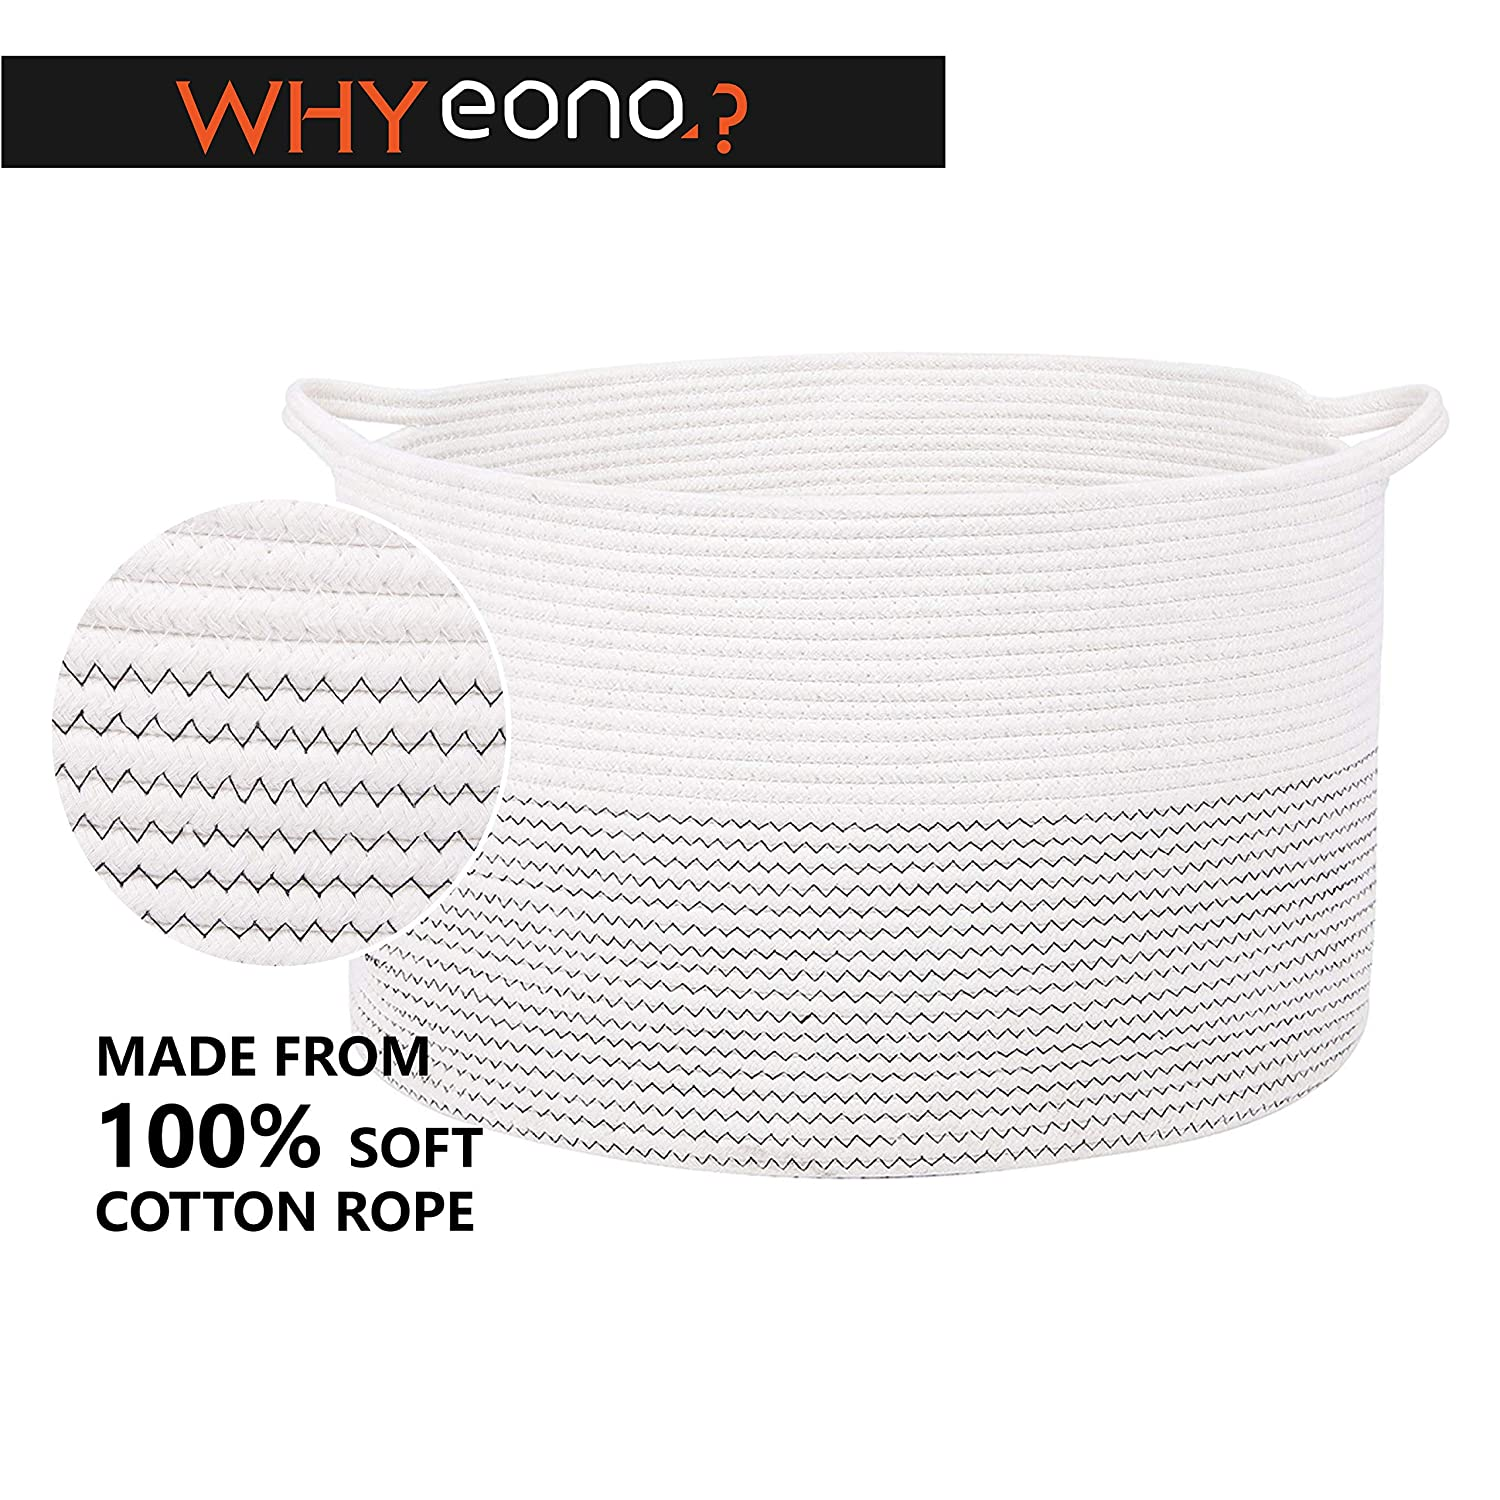 White, L Eono  Brand Large Storage Baskets -17 Inches x 14.6 Inches - Cotton Rope Basket Woven Baby Laundry Basket with Handle for Diaper Toy Cute Neutral Home Decor H D